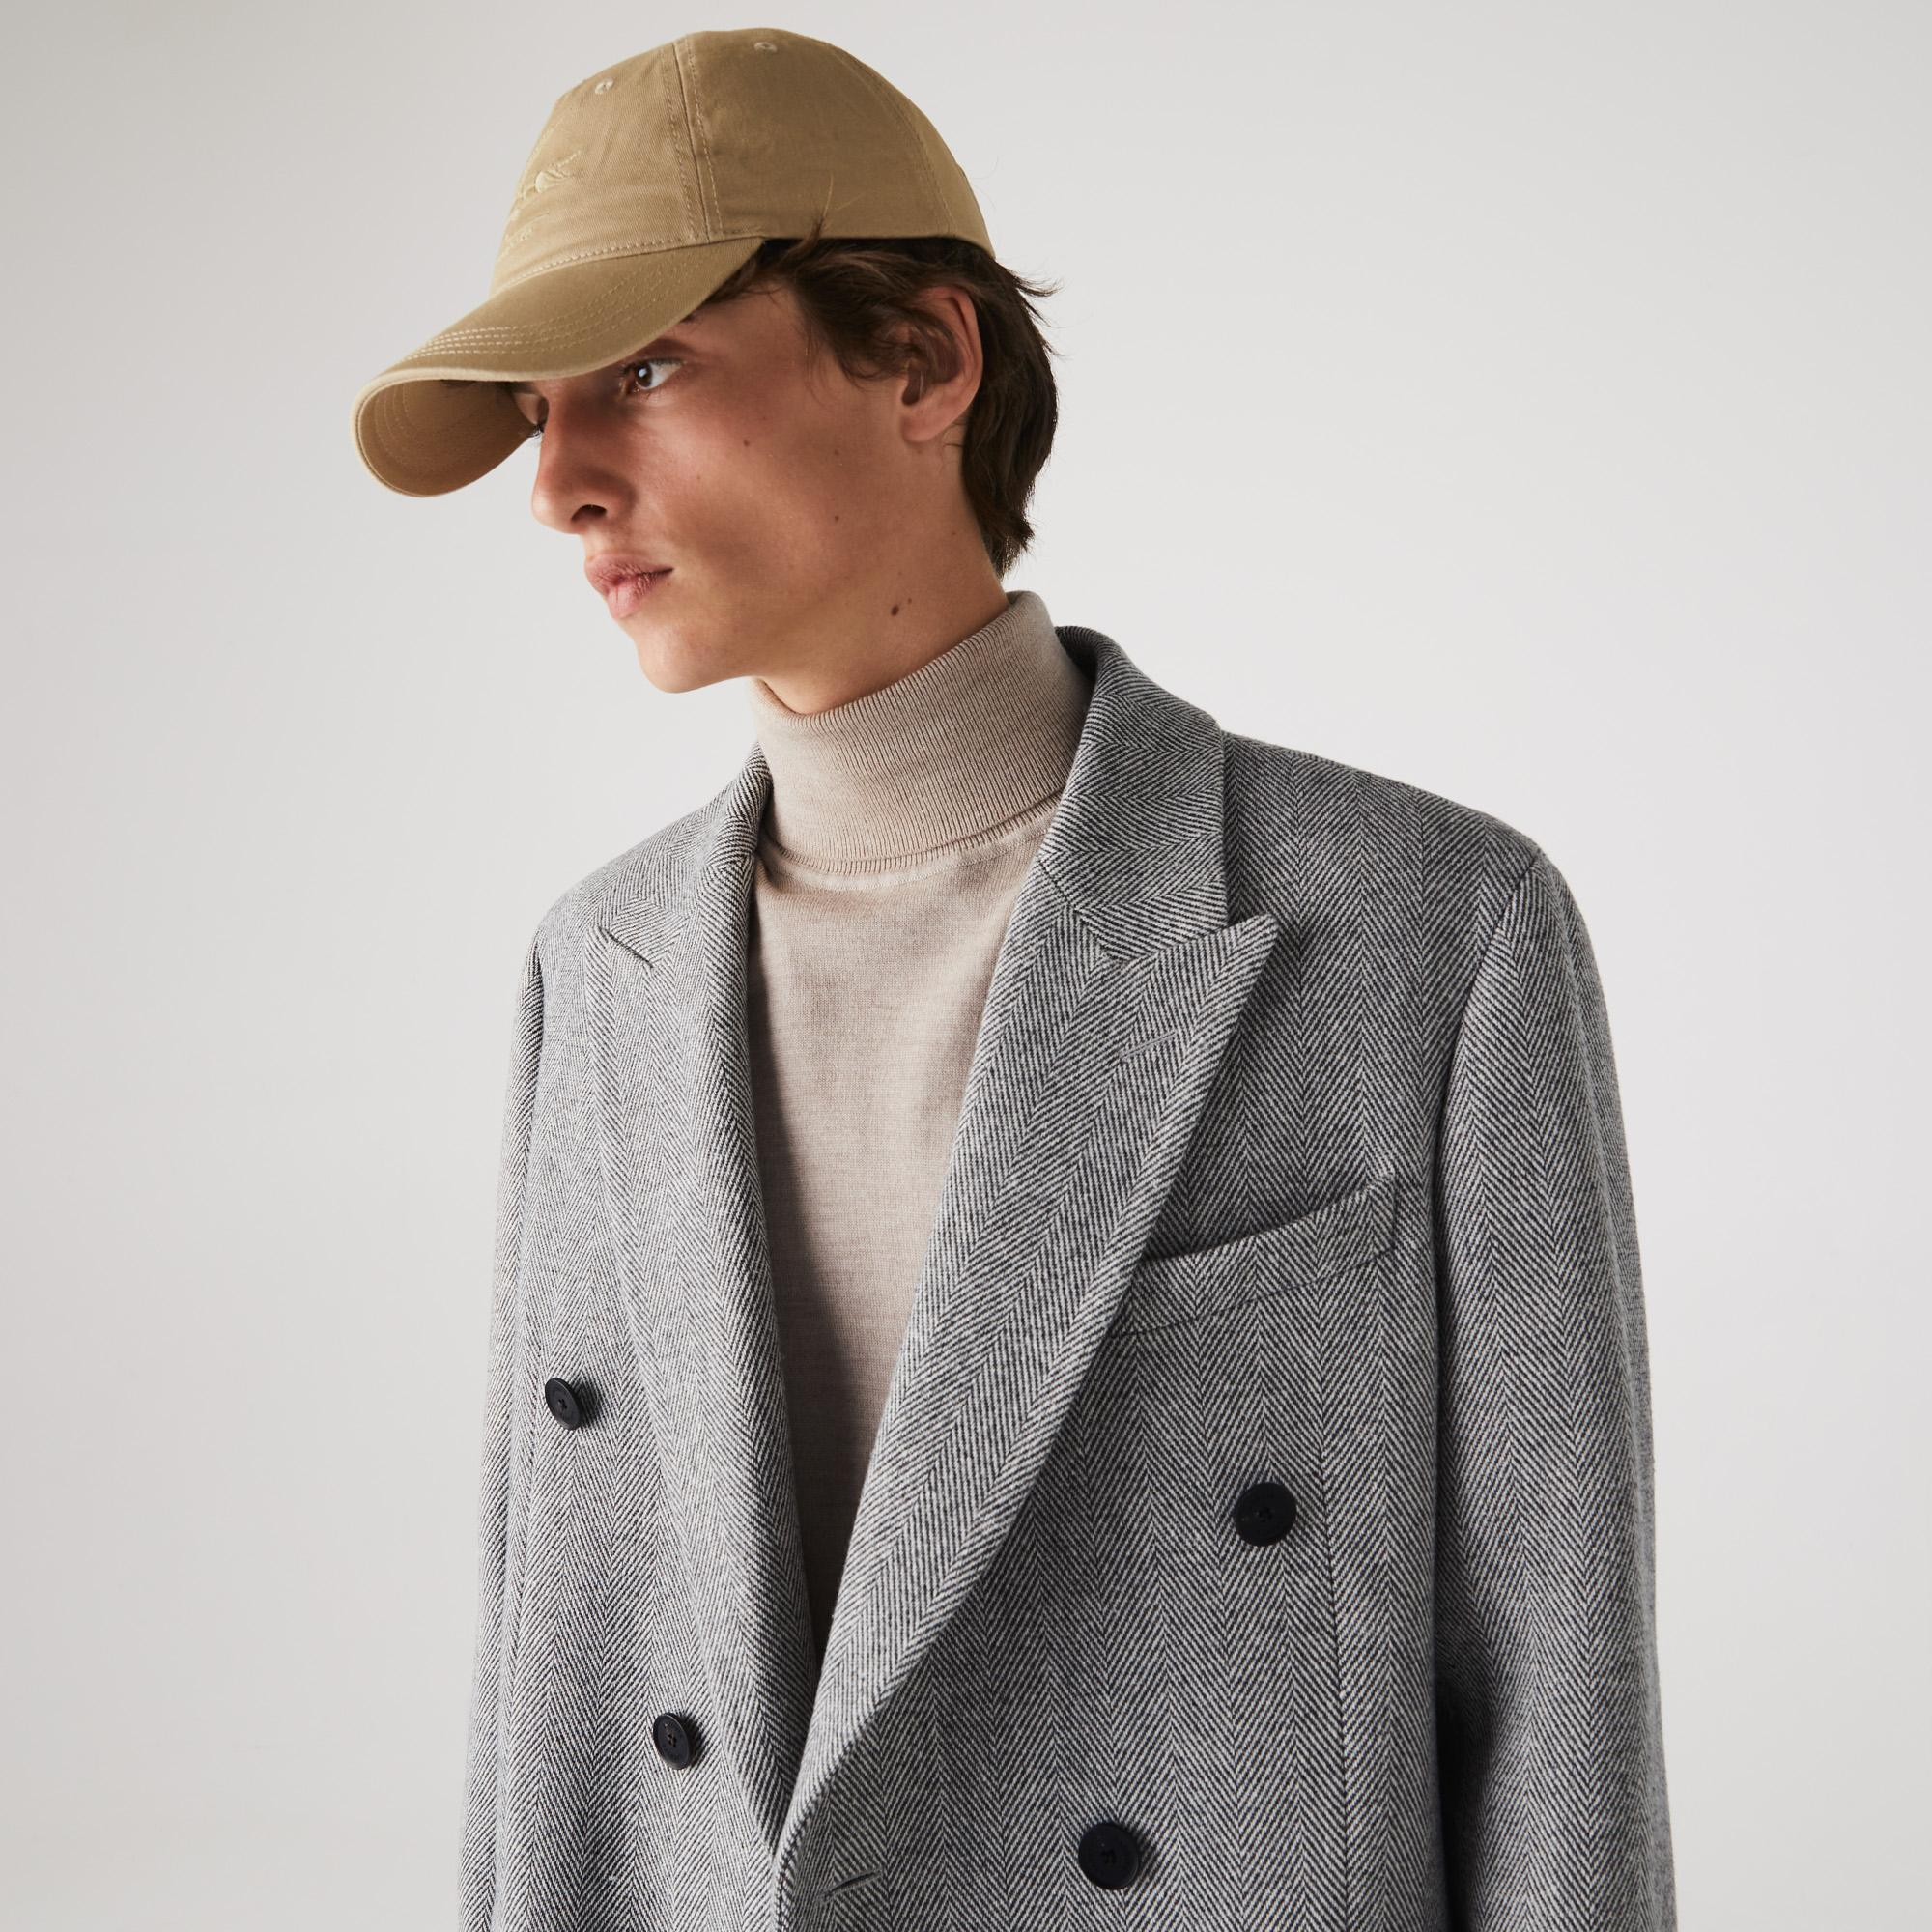 Lacoste Men's Long Double-Breasted Herringbone Wool Coat